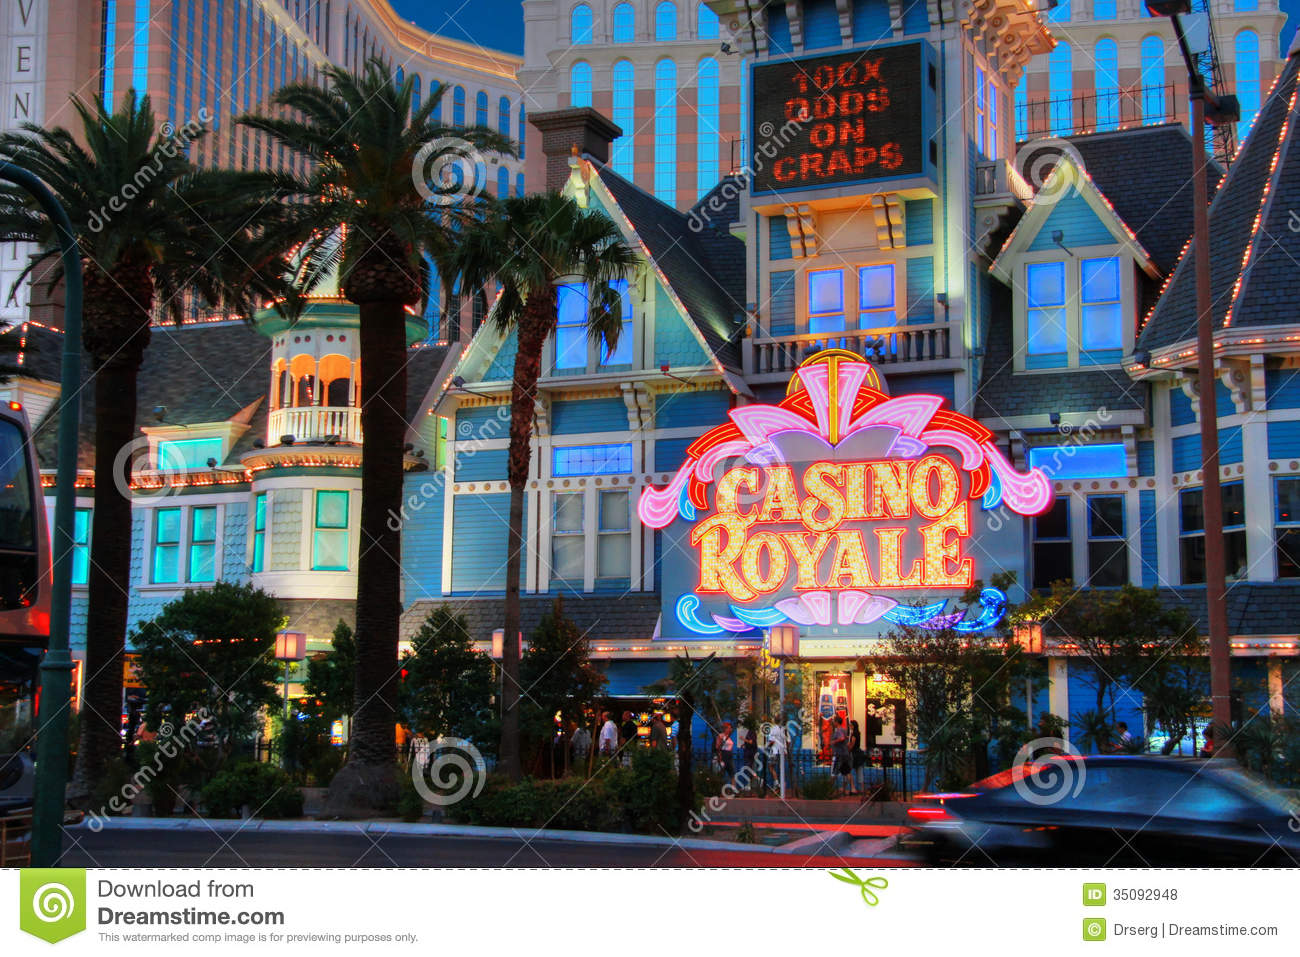 Casino royale hotel deal by mystic lake casino